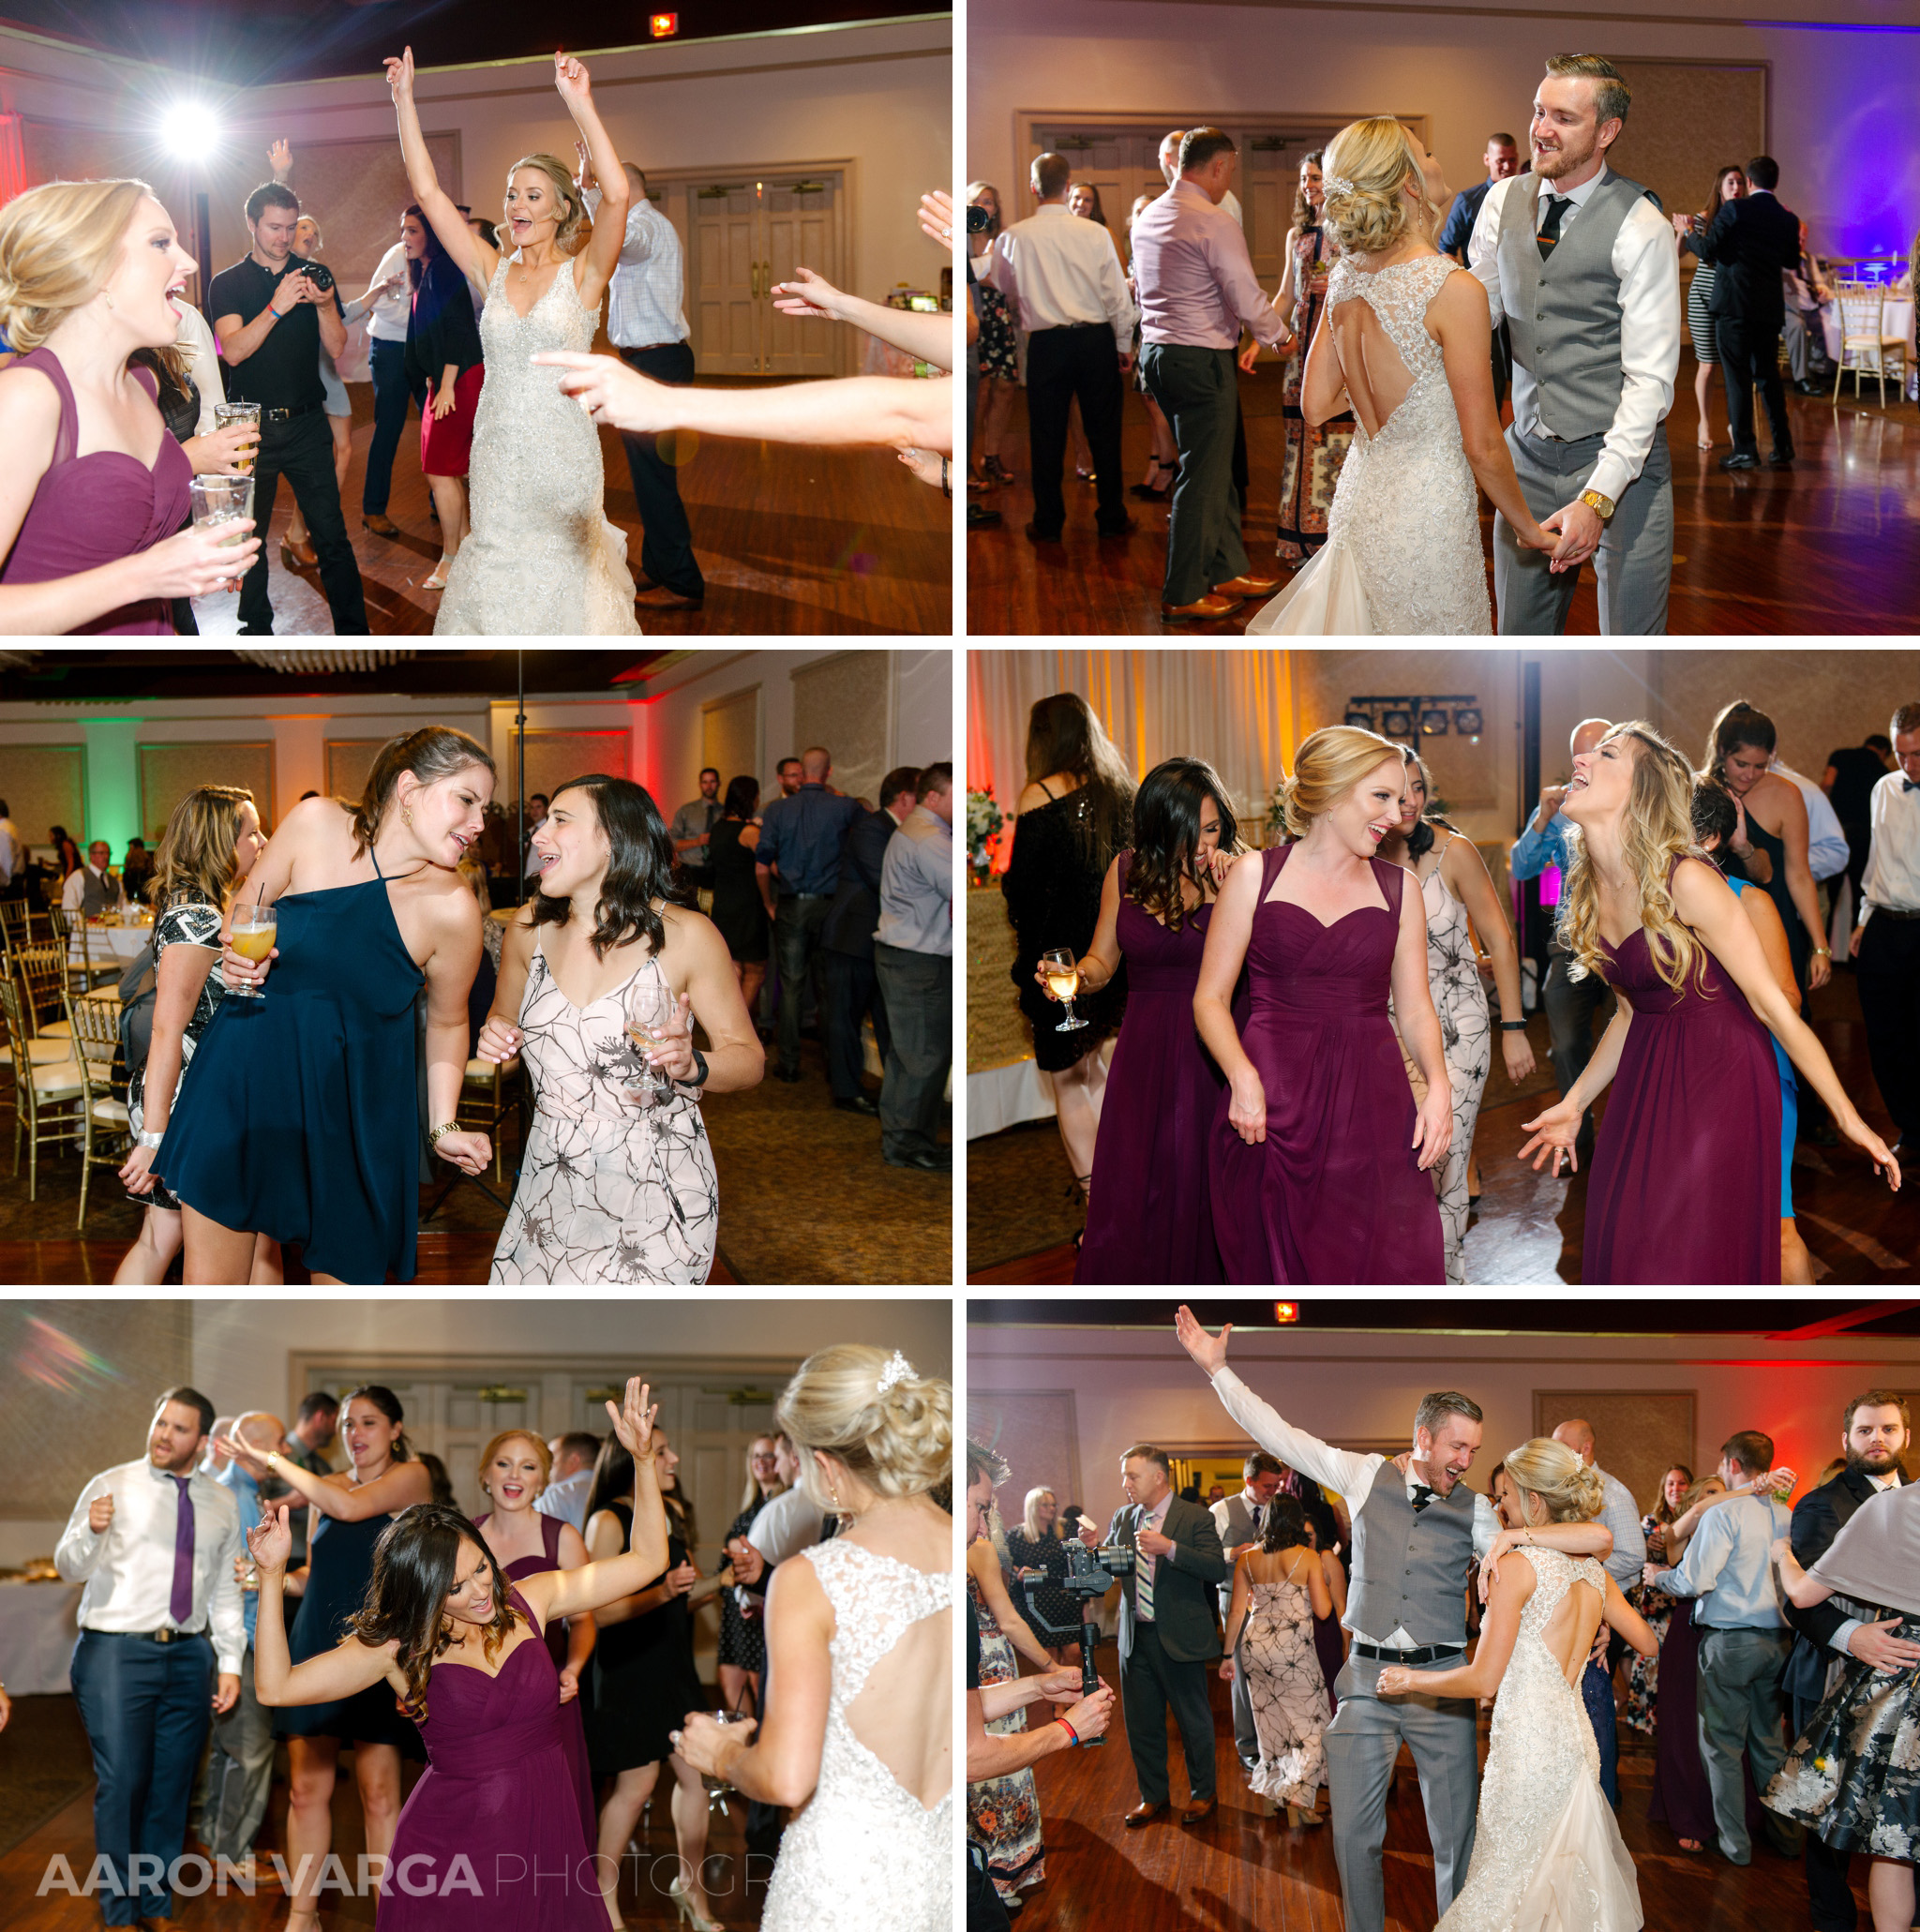 55 montour heights country club reception dancing - Amy + Bill | Montour Heights Country Club Wedding Photos